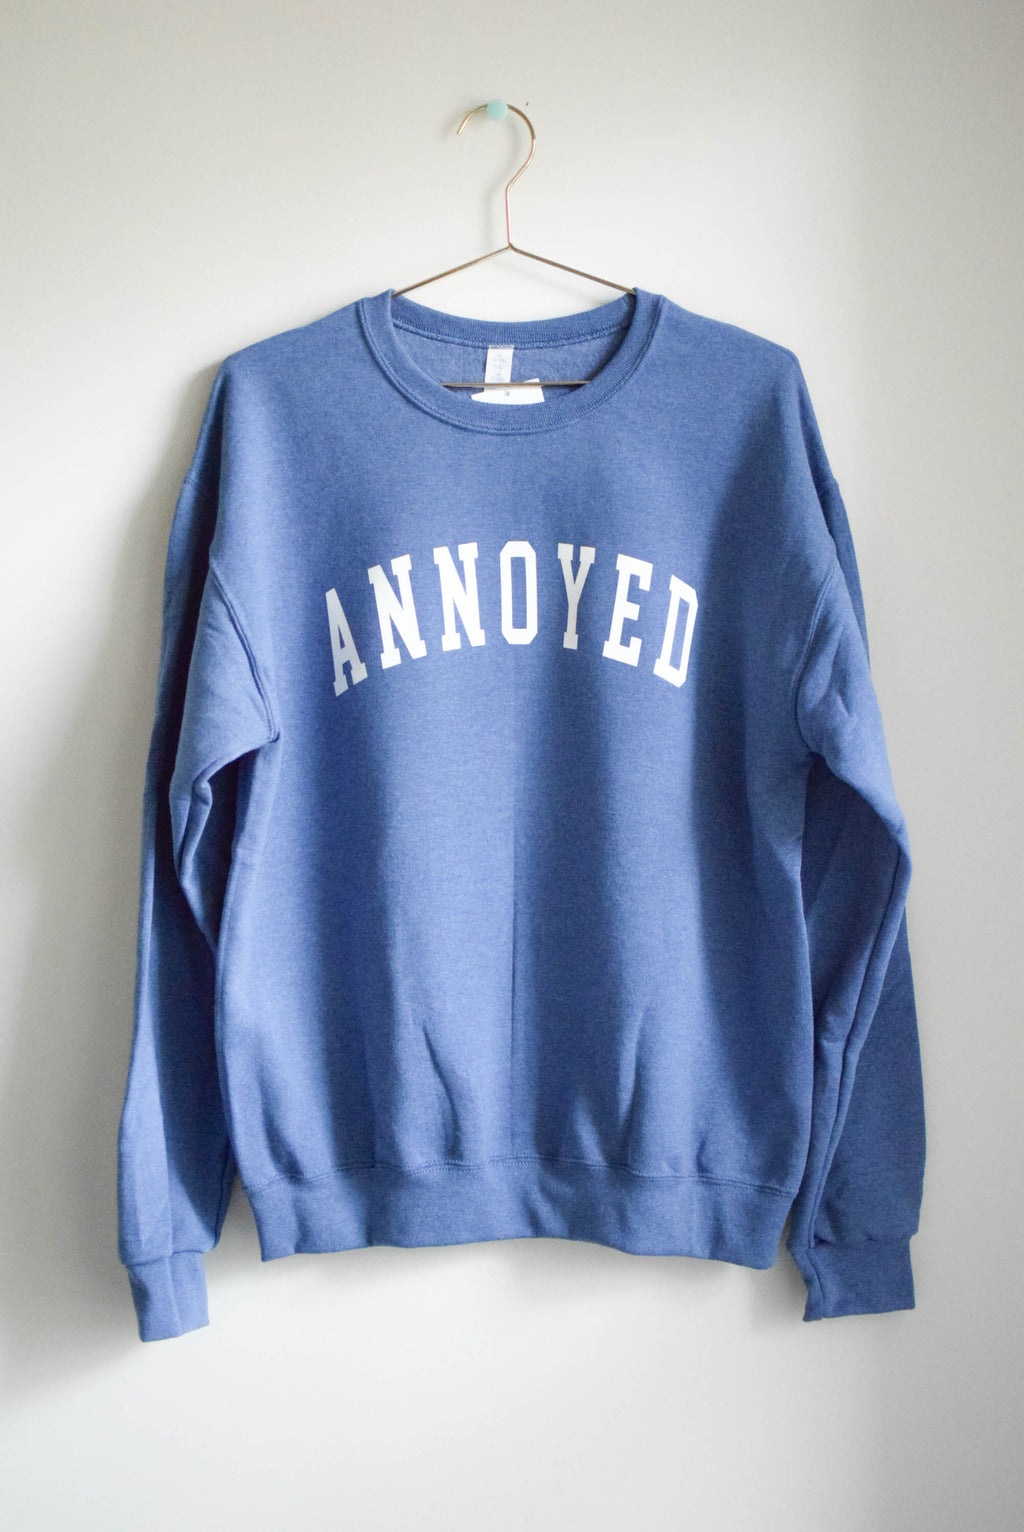 annoyed letterman sweatshirt